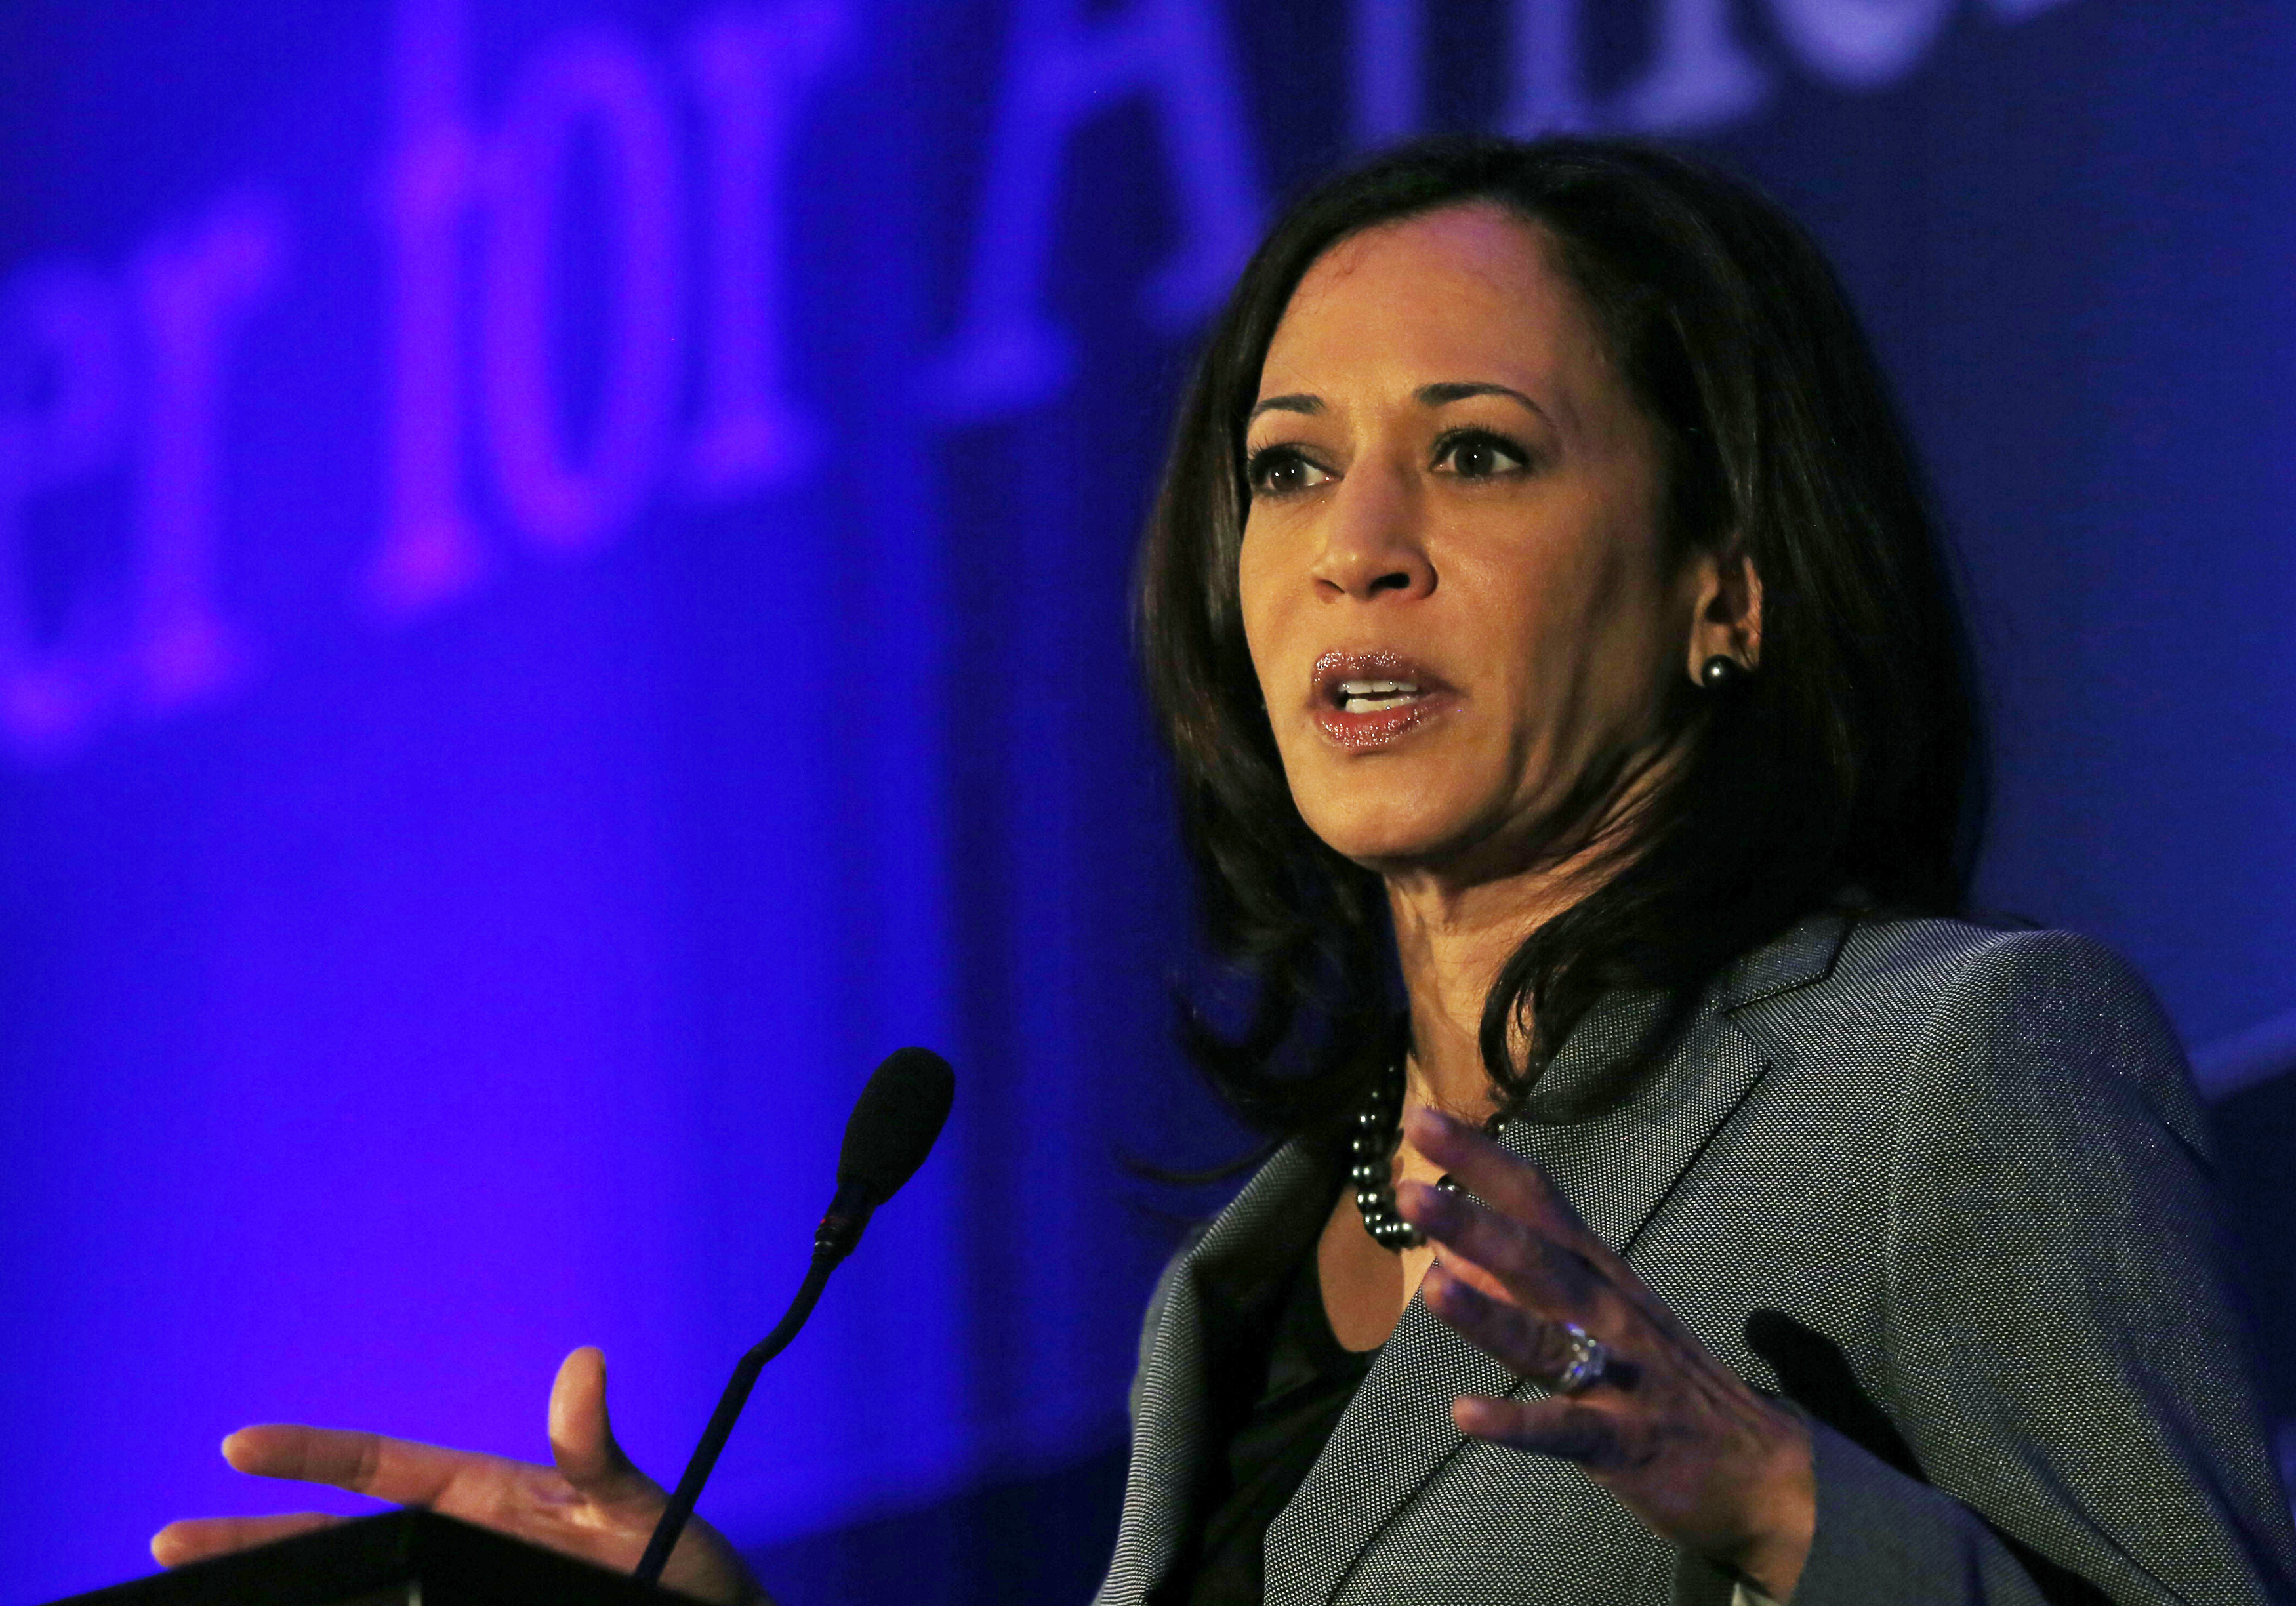 California Attorney General Kamala Harris speaks at the Center for American Progress' 2014 Making Progress Policy Conference in Washington November 19, 2014.